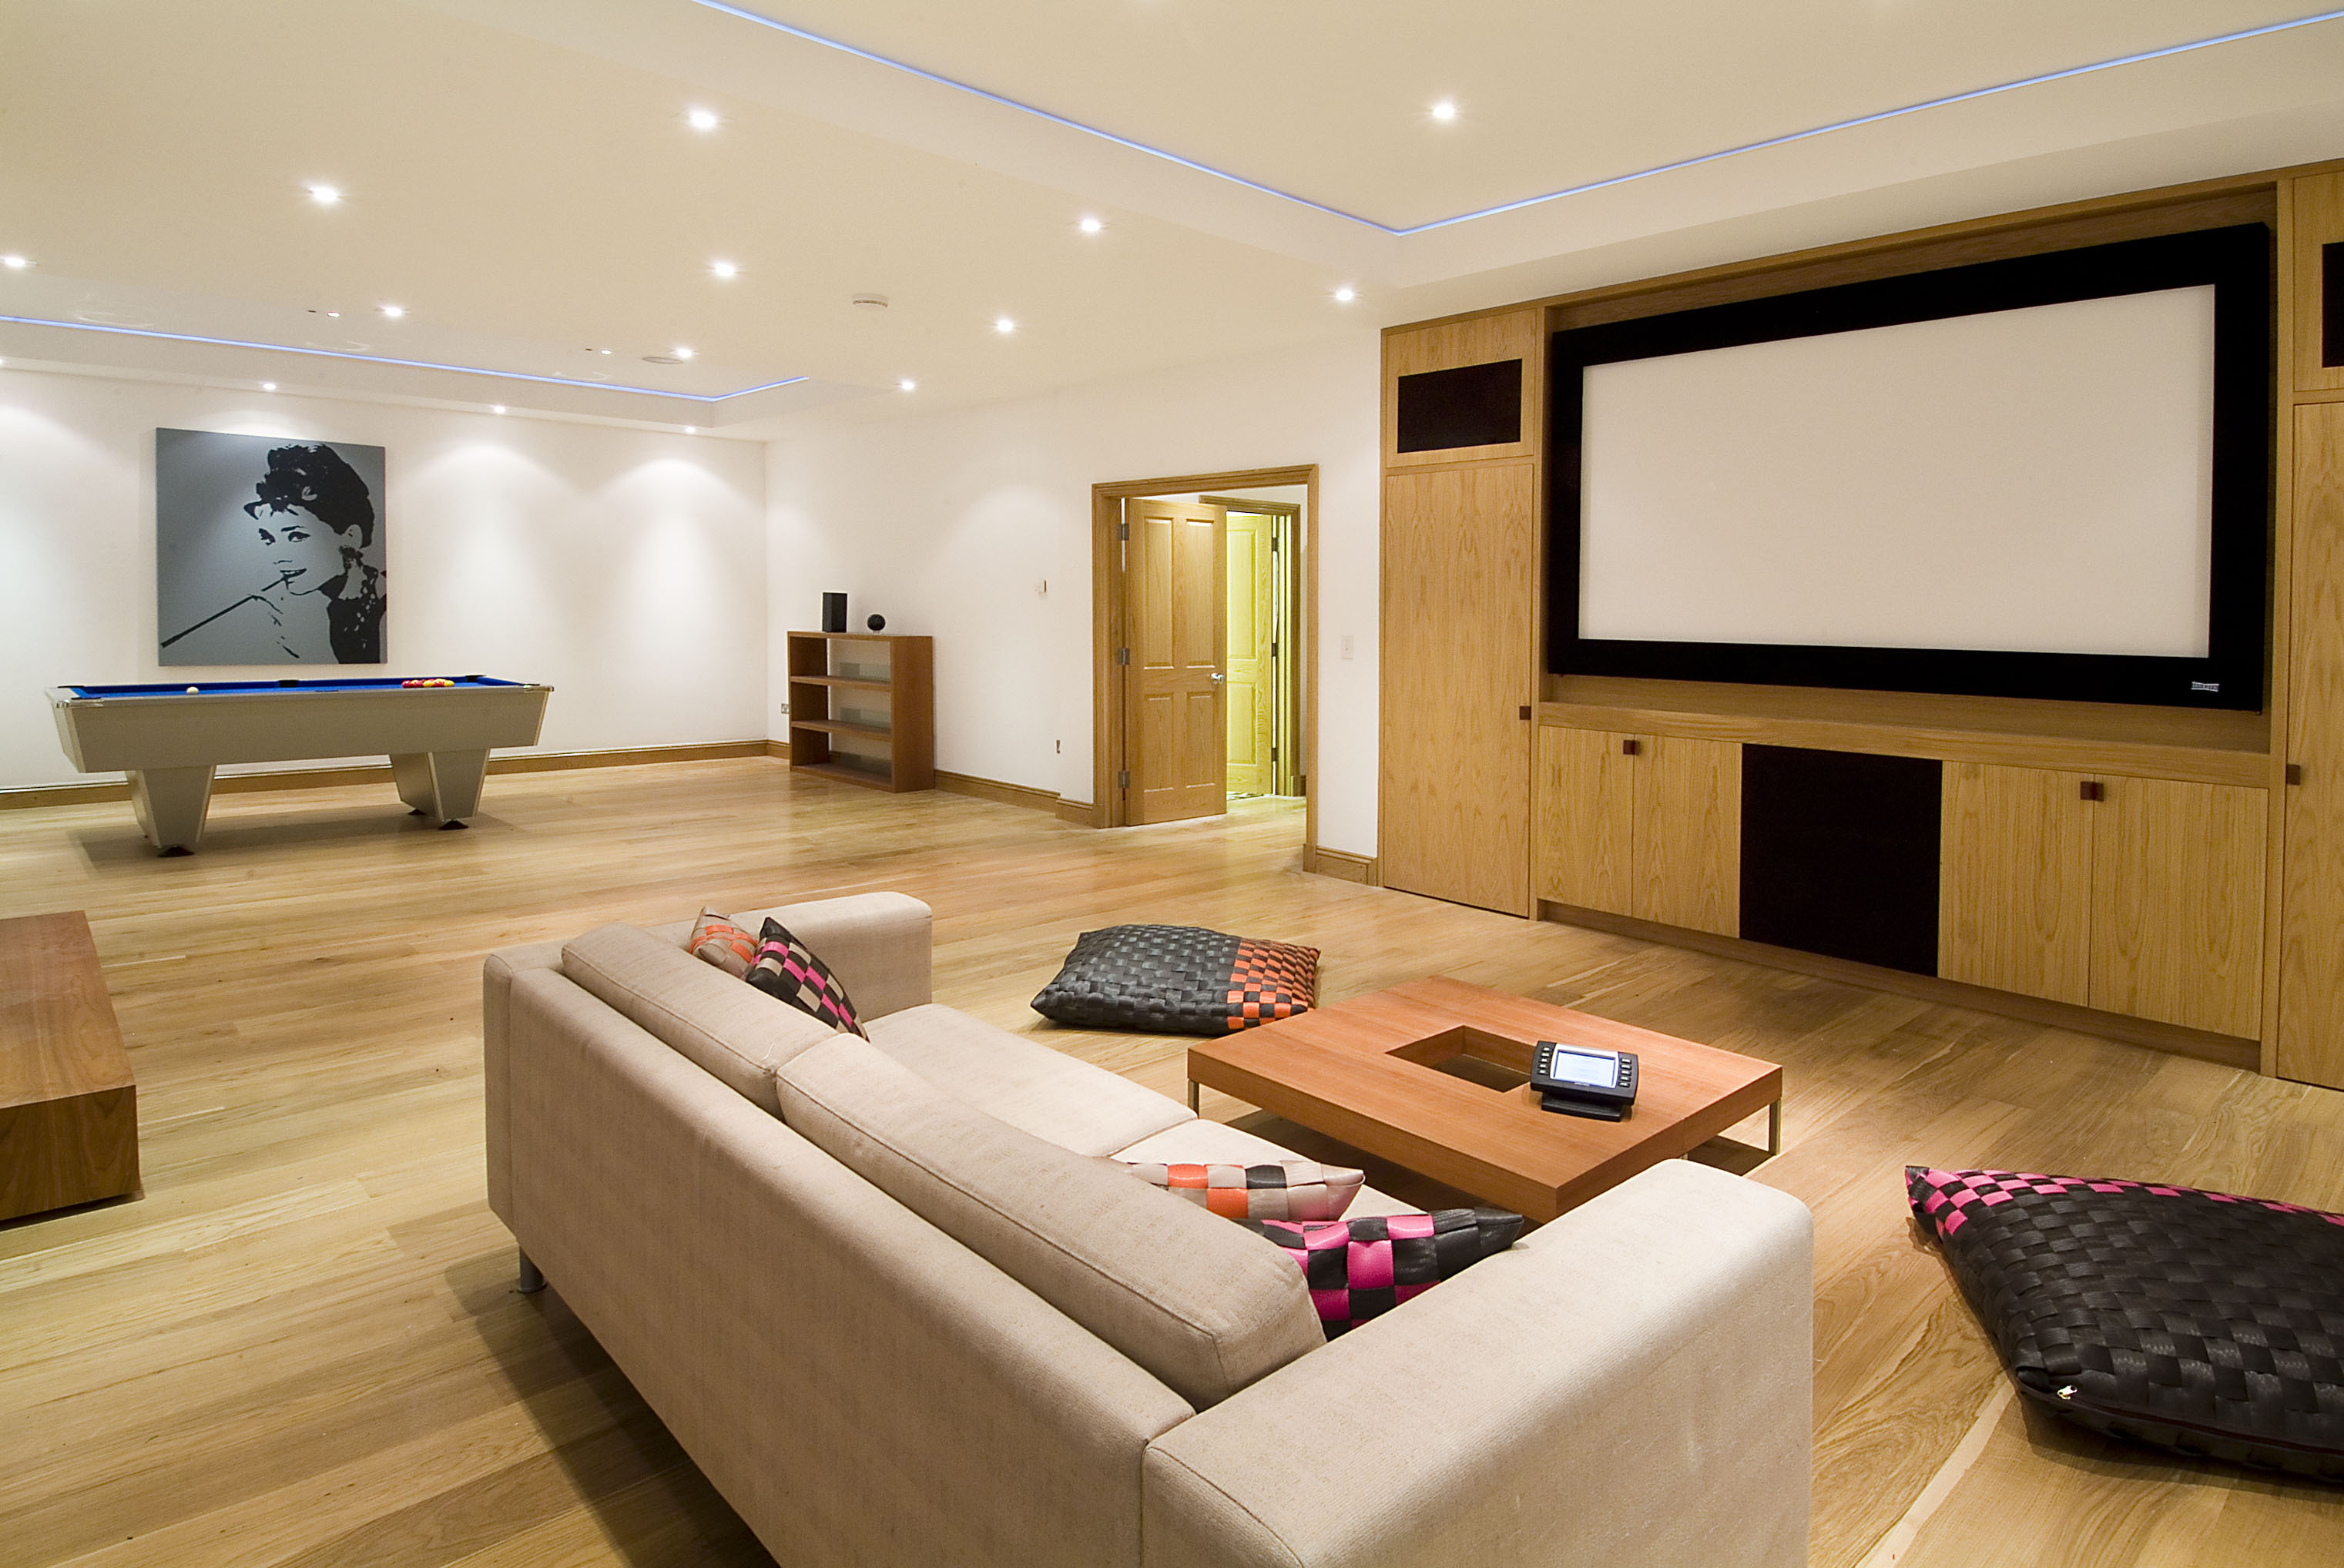 creativemass - basement cinema and games room, London